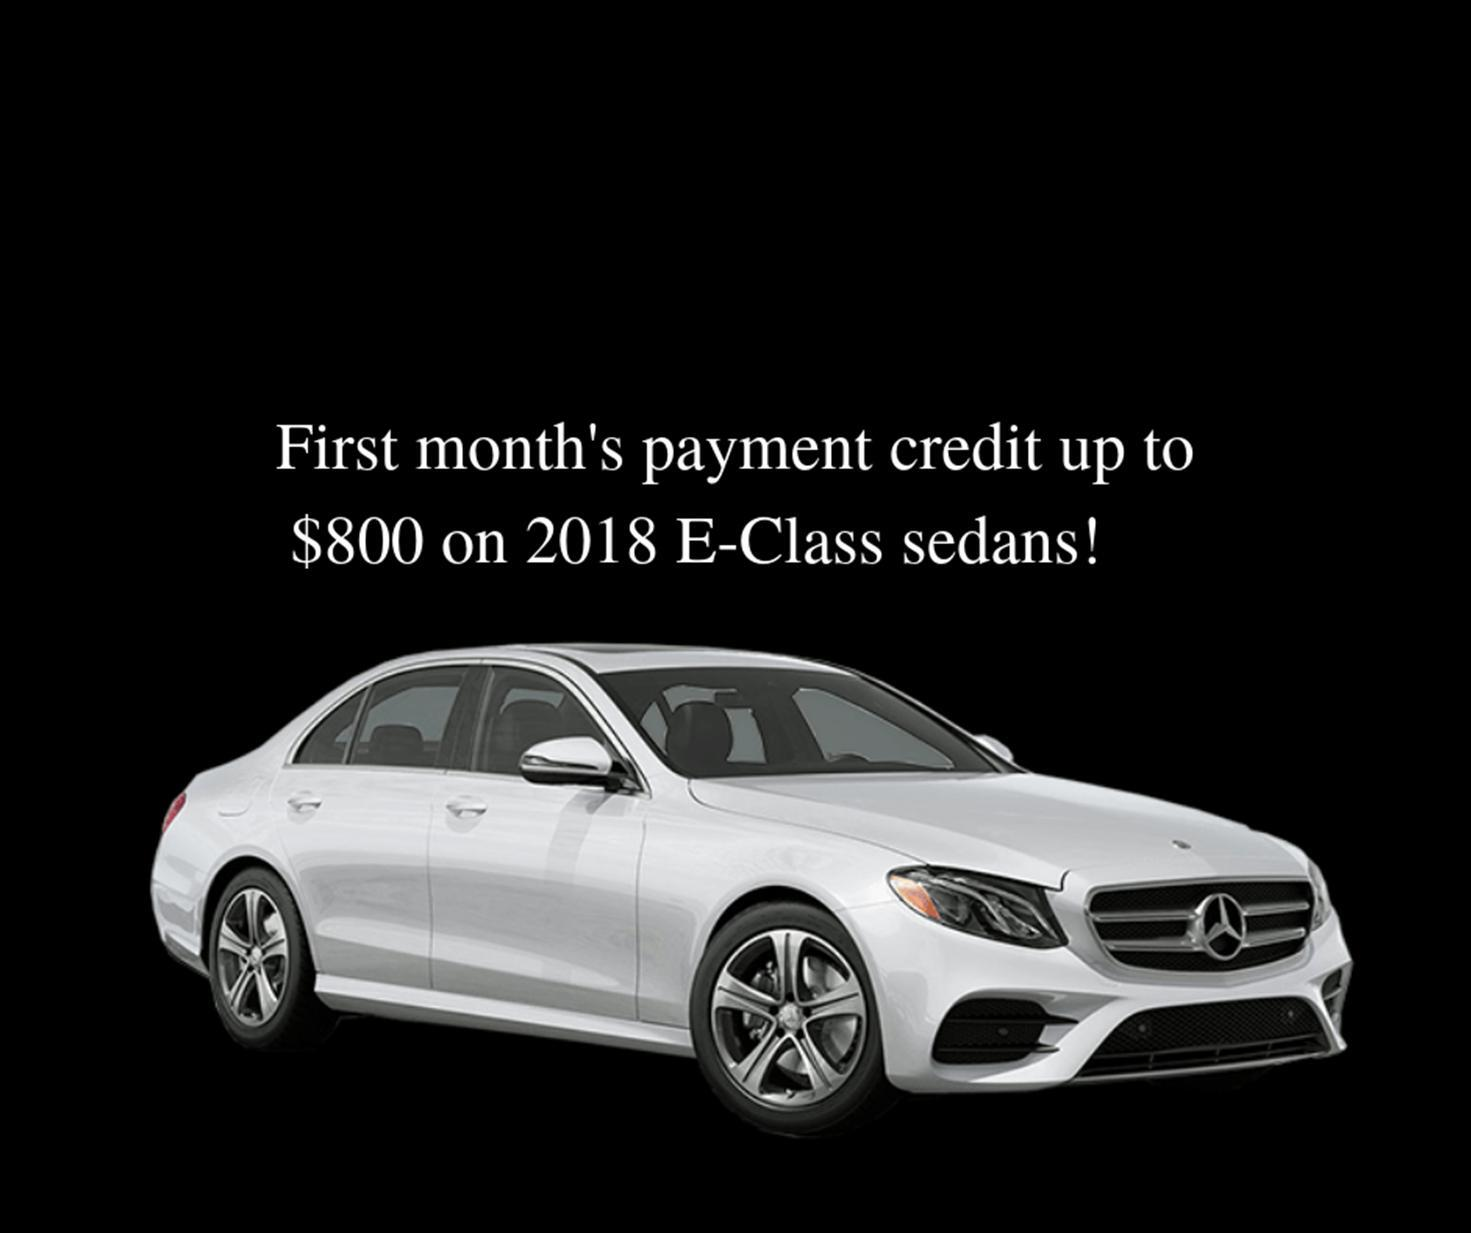 Used Mercedes Benz Houston: Mercedes-Benz Dealership Indianapolis IN